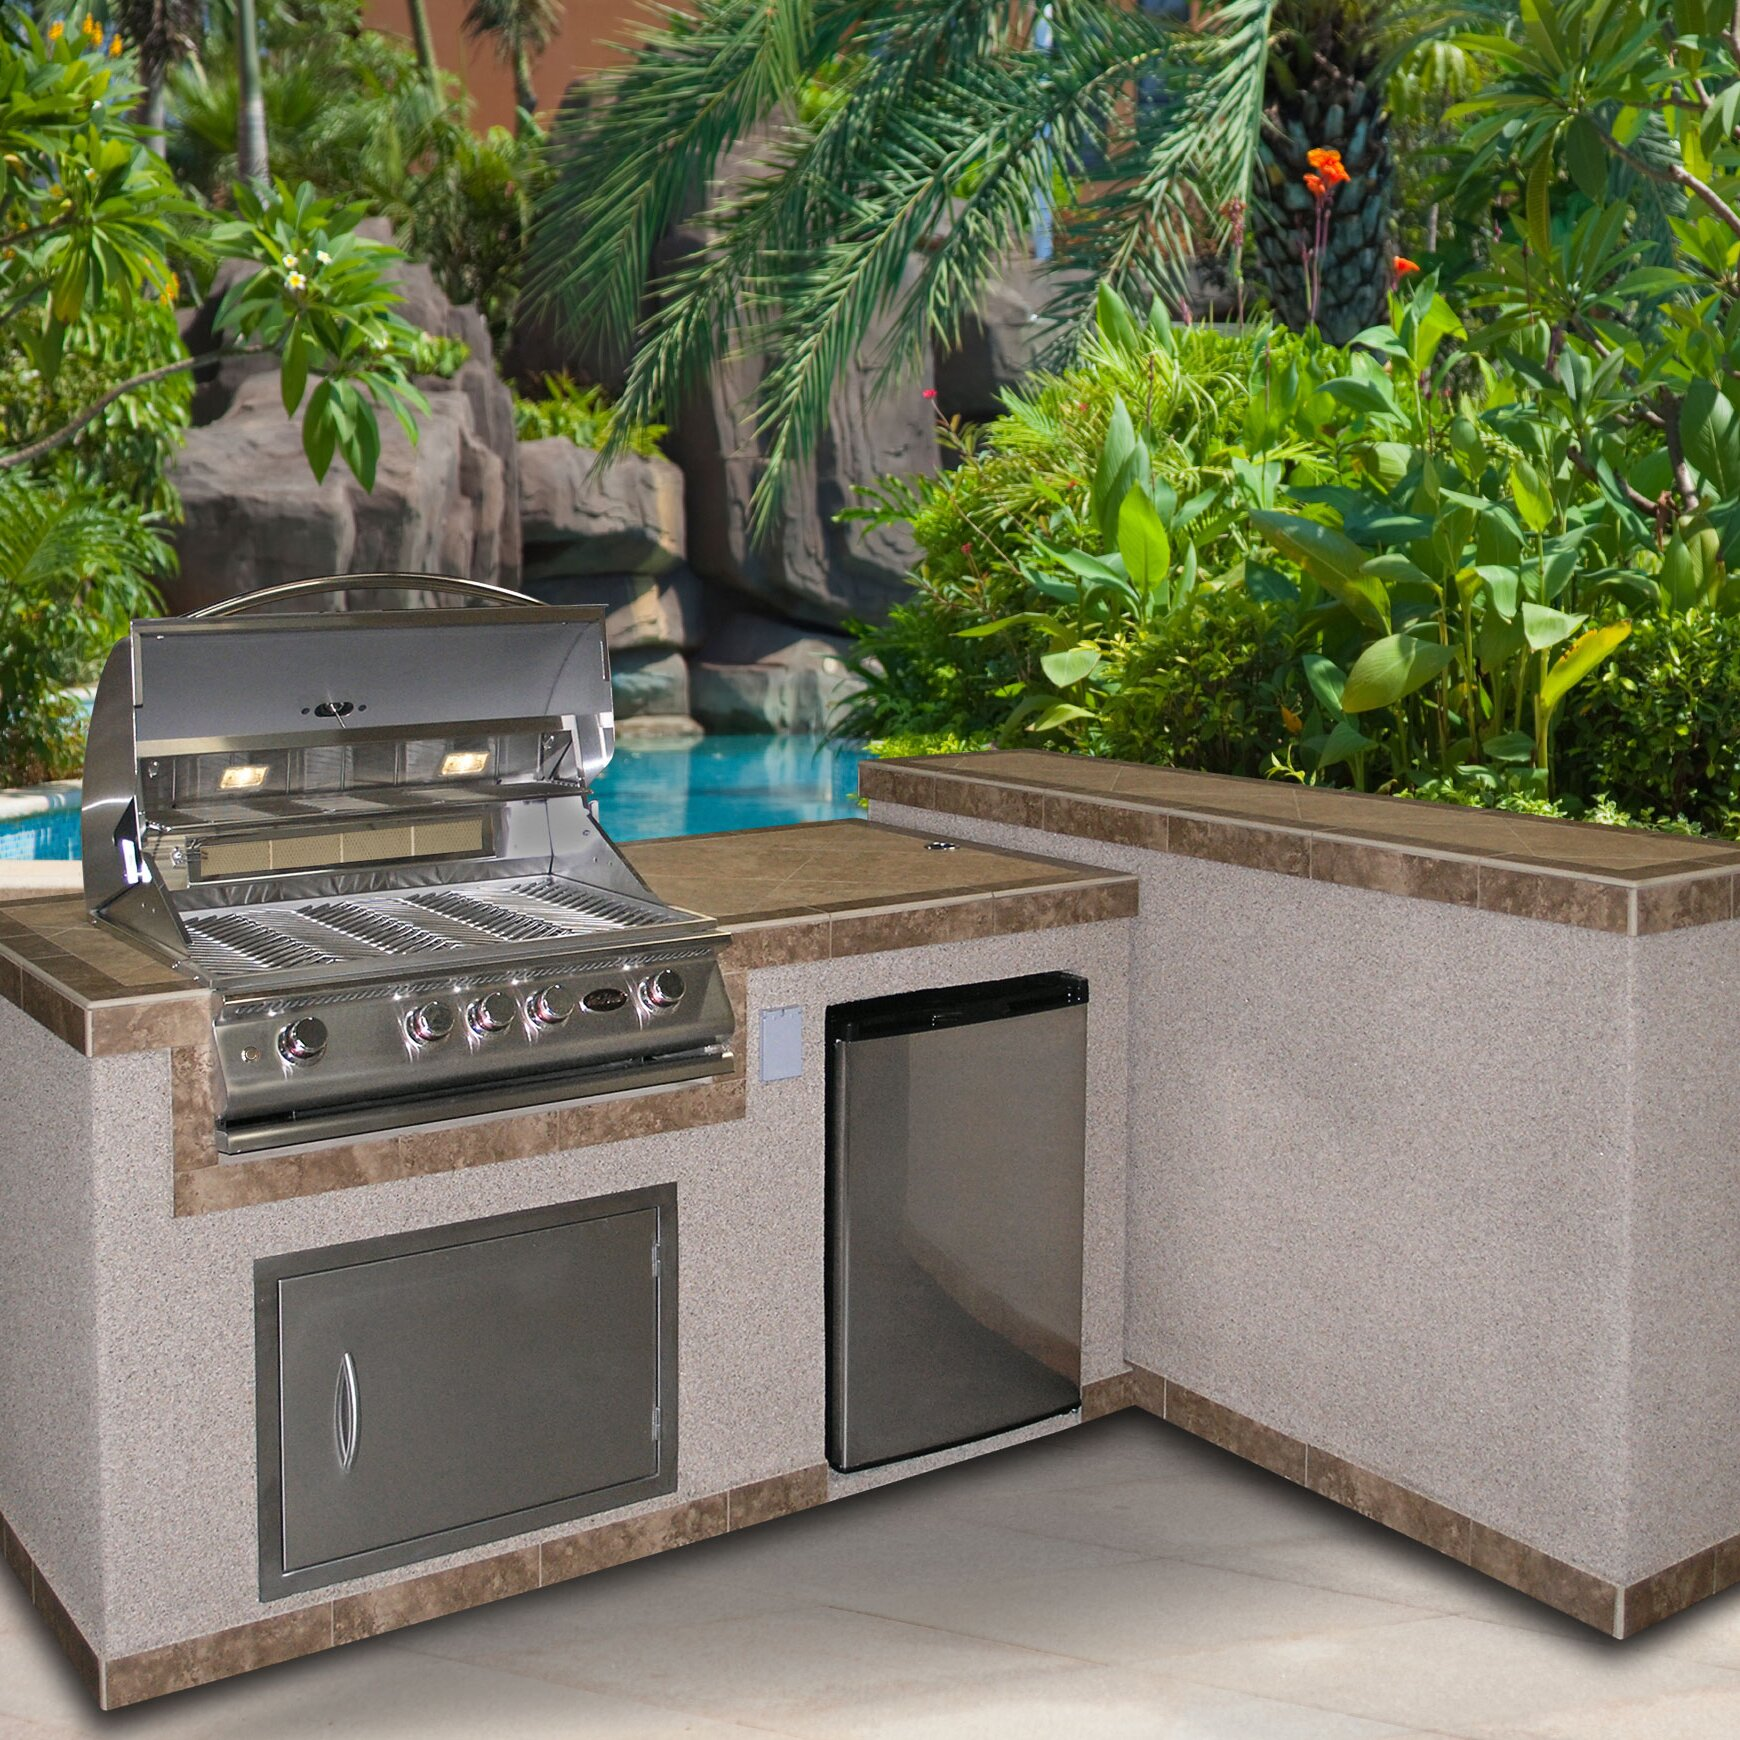 CalFlame 4-Burner Built In Gas Grill with Cabinet and Refrigerator ...